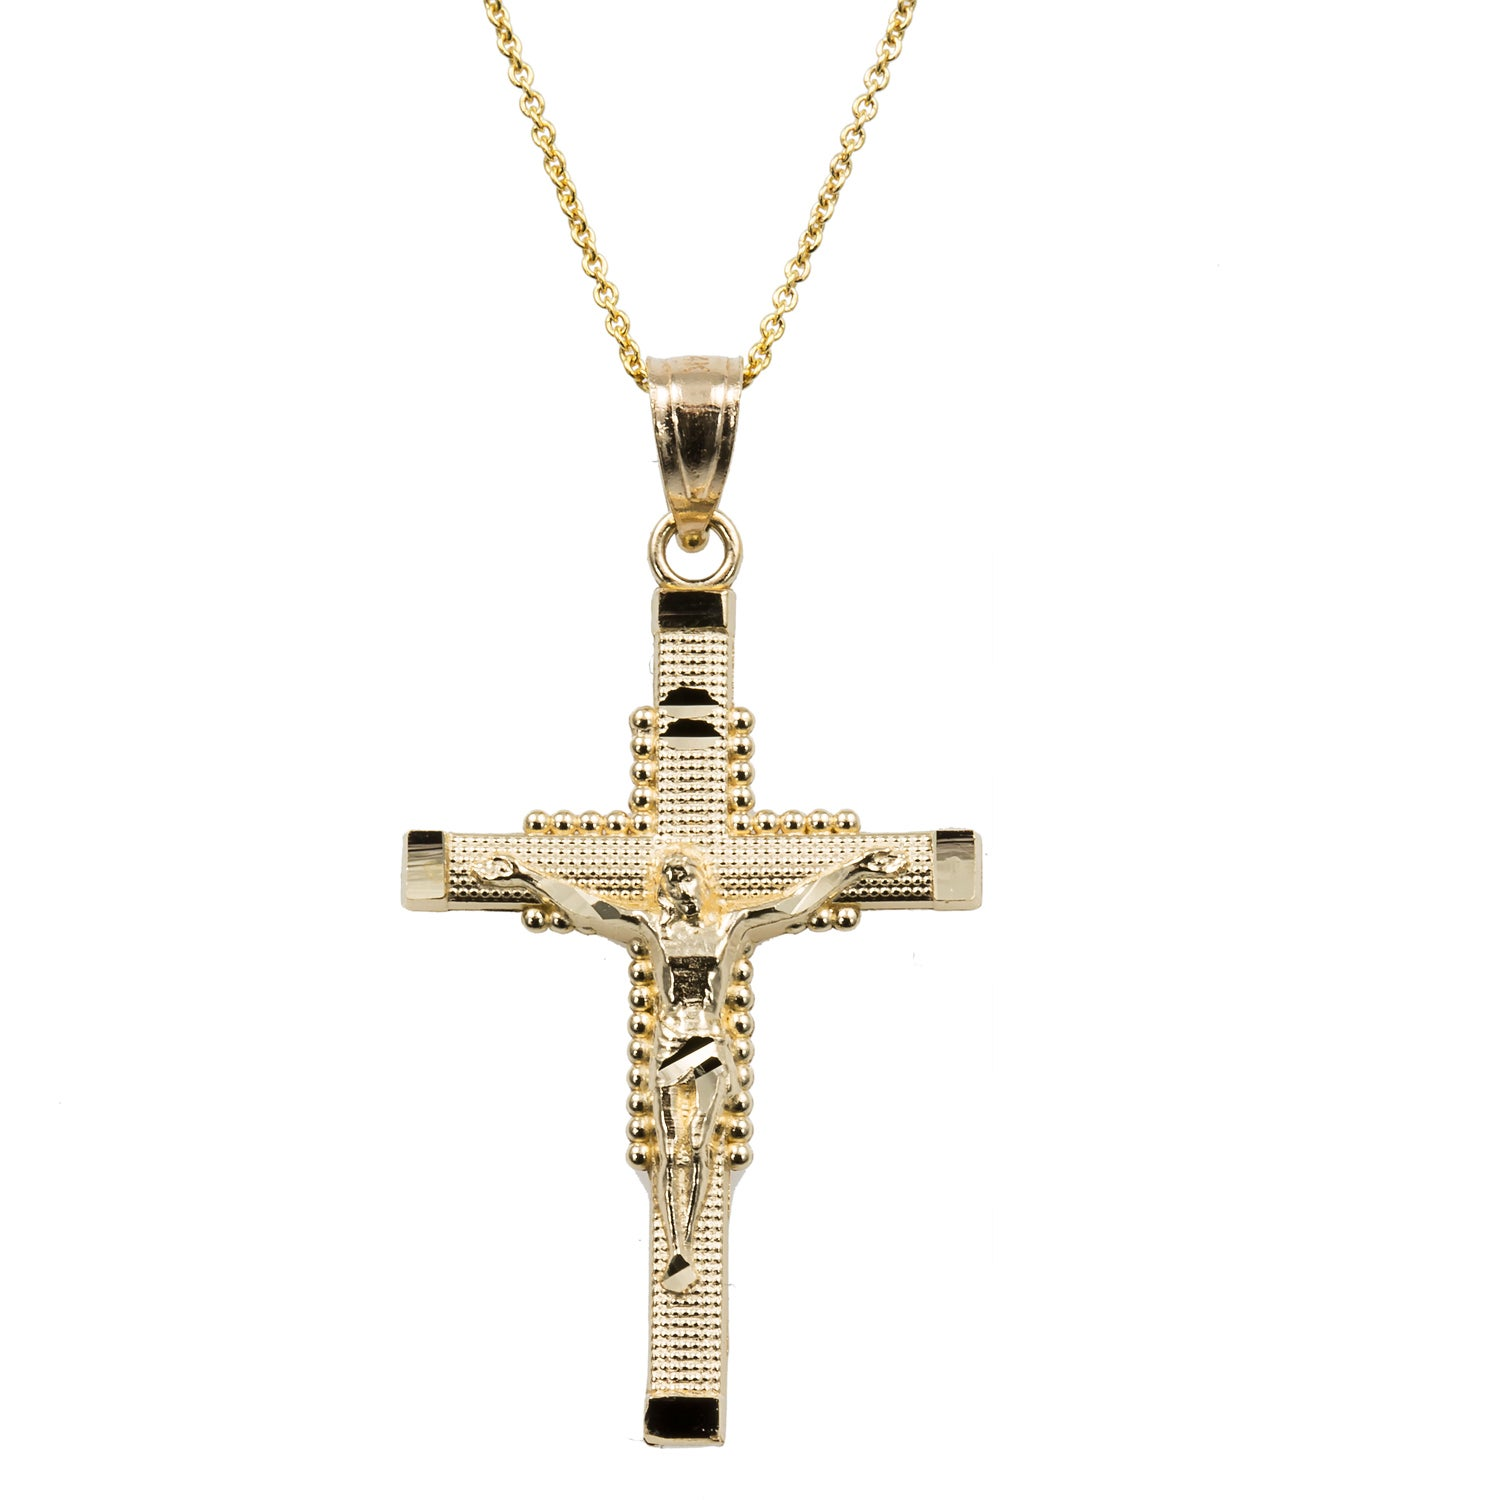 cab57f70b3a06d Shop 14k Yellow Gold Cross Necklace - Free Shipping Today ...